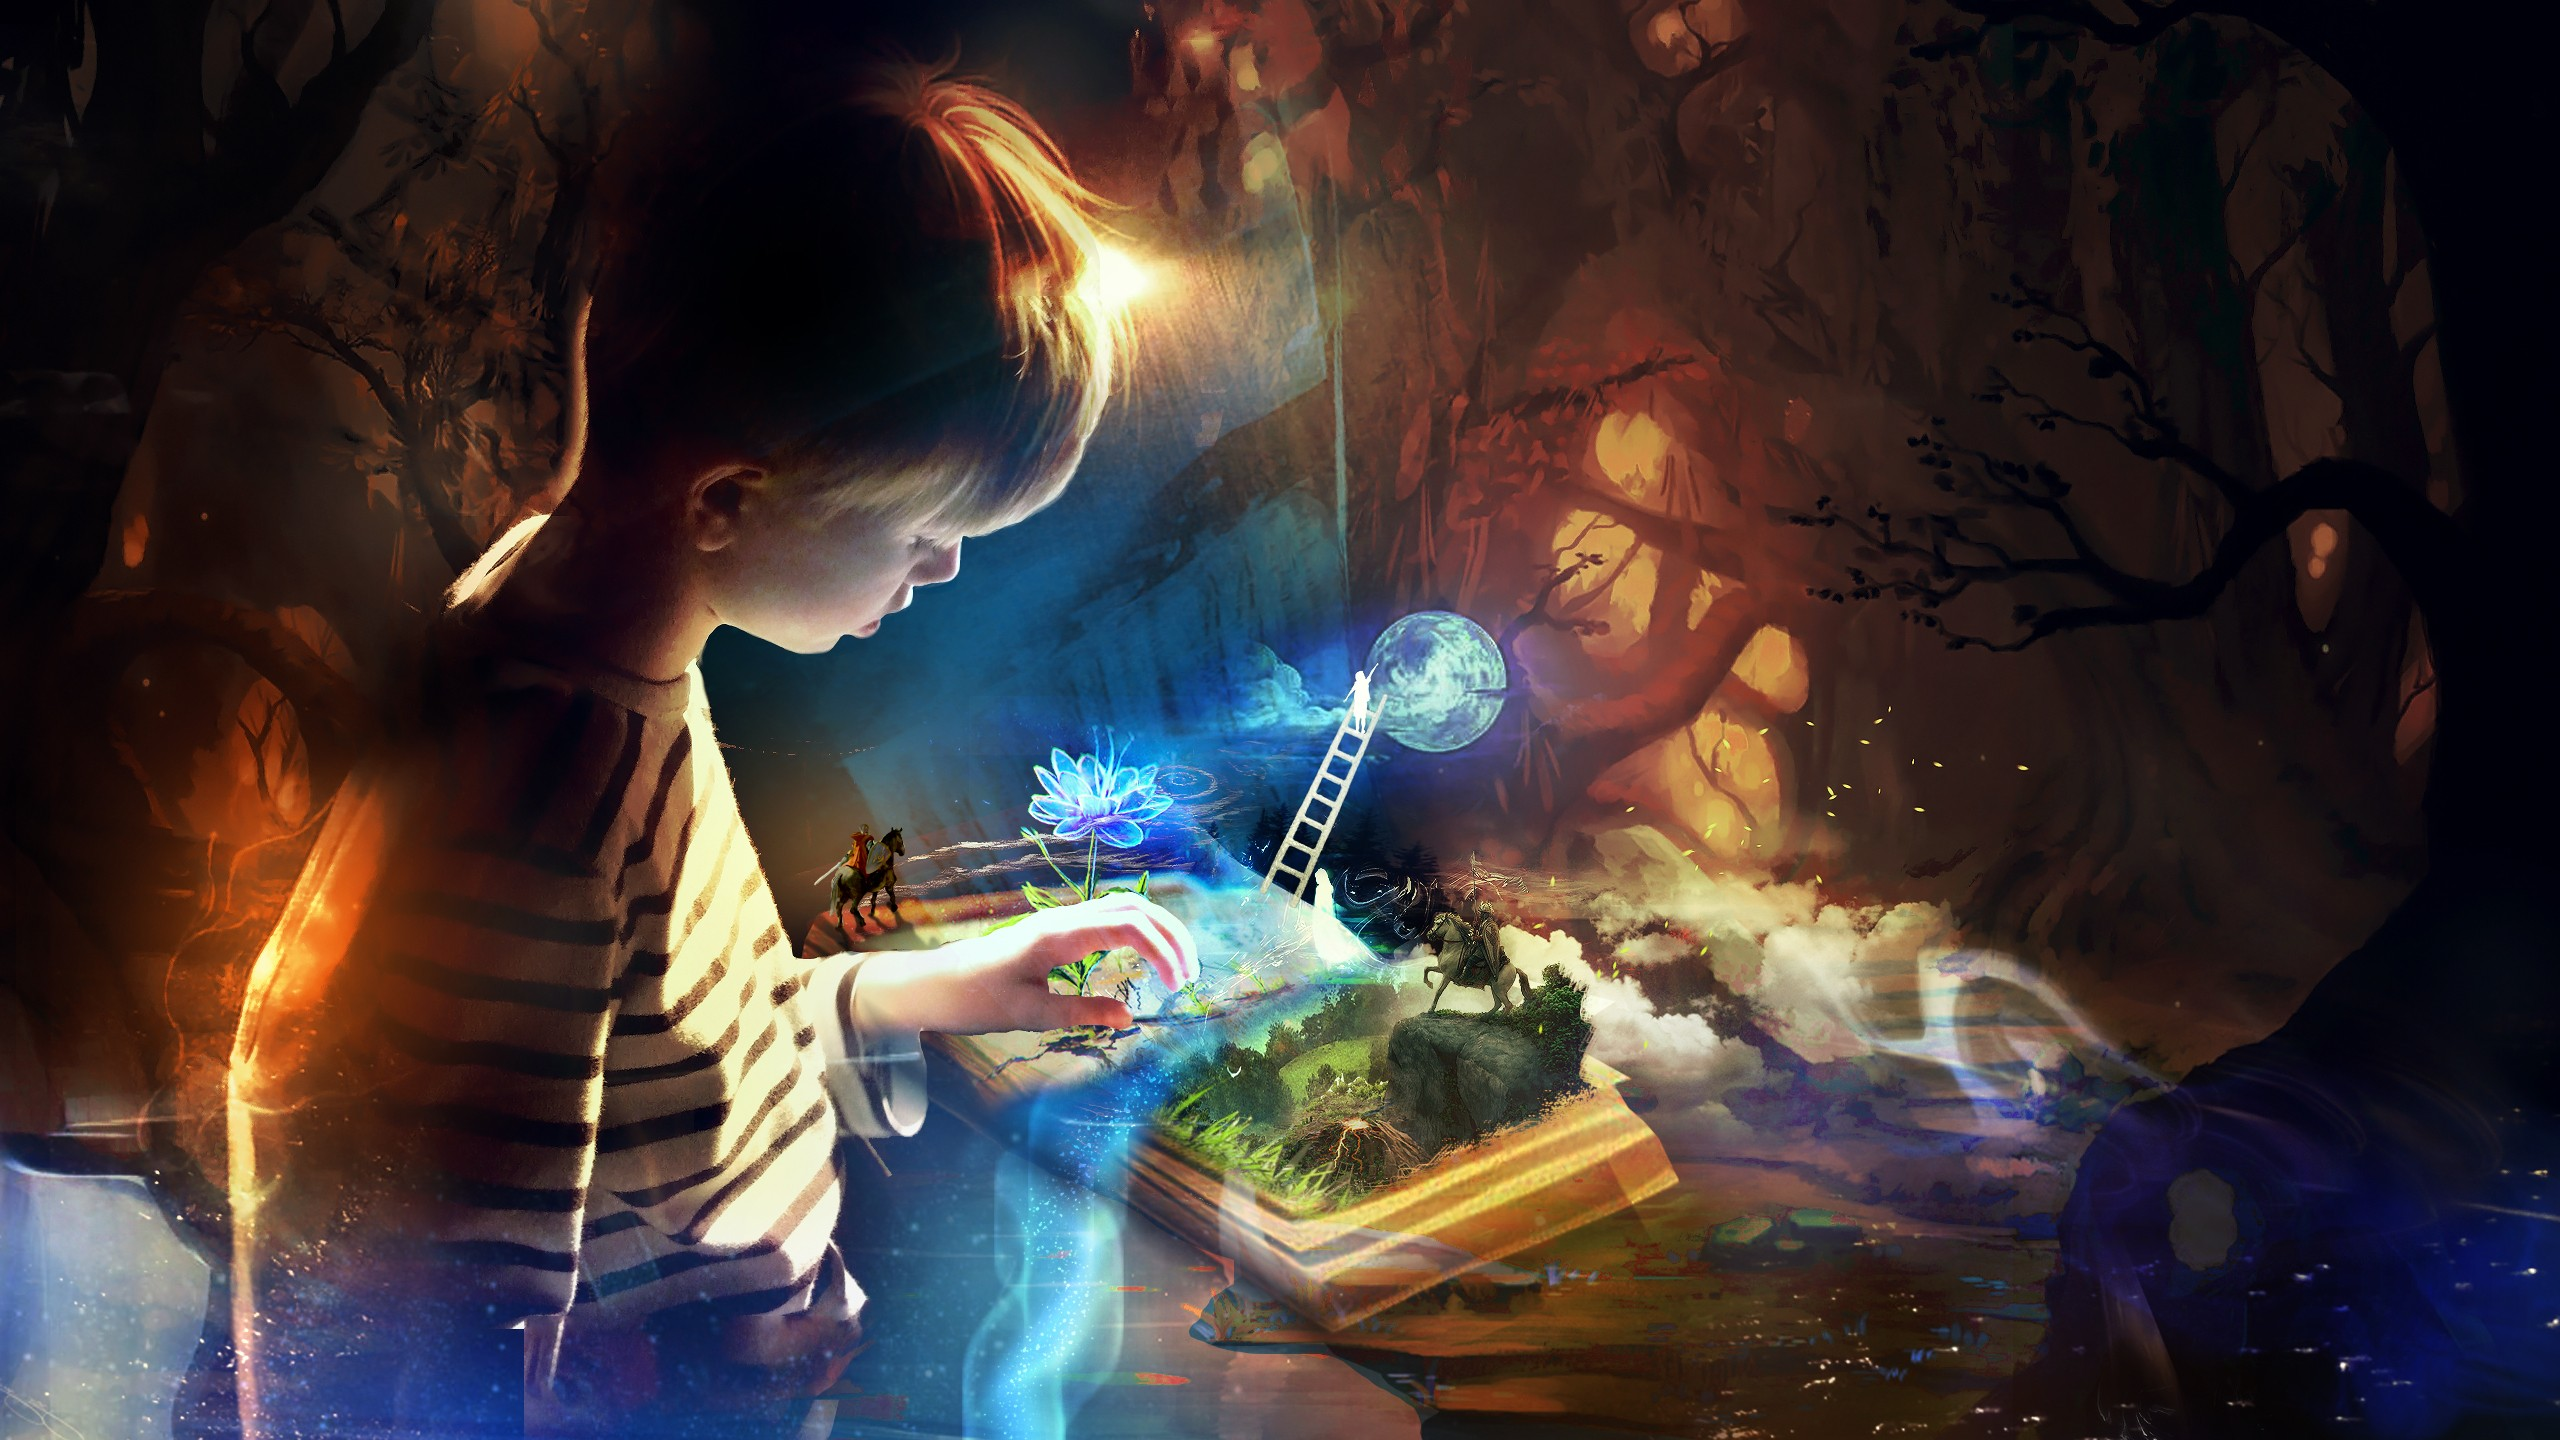 Creative Detailed Hd Fantasy Wallpapers: Book Imagination, HD Creative, 4k Wallpapers, Images